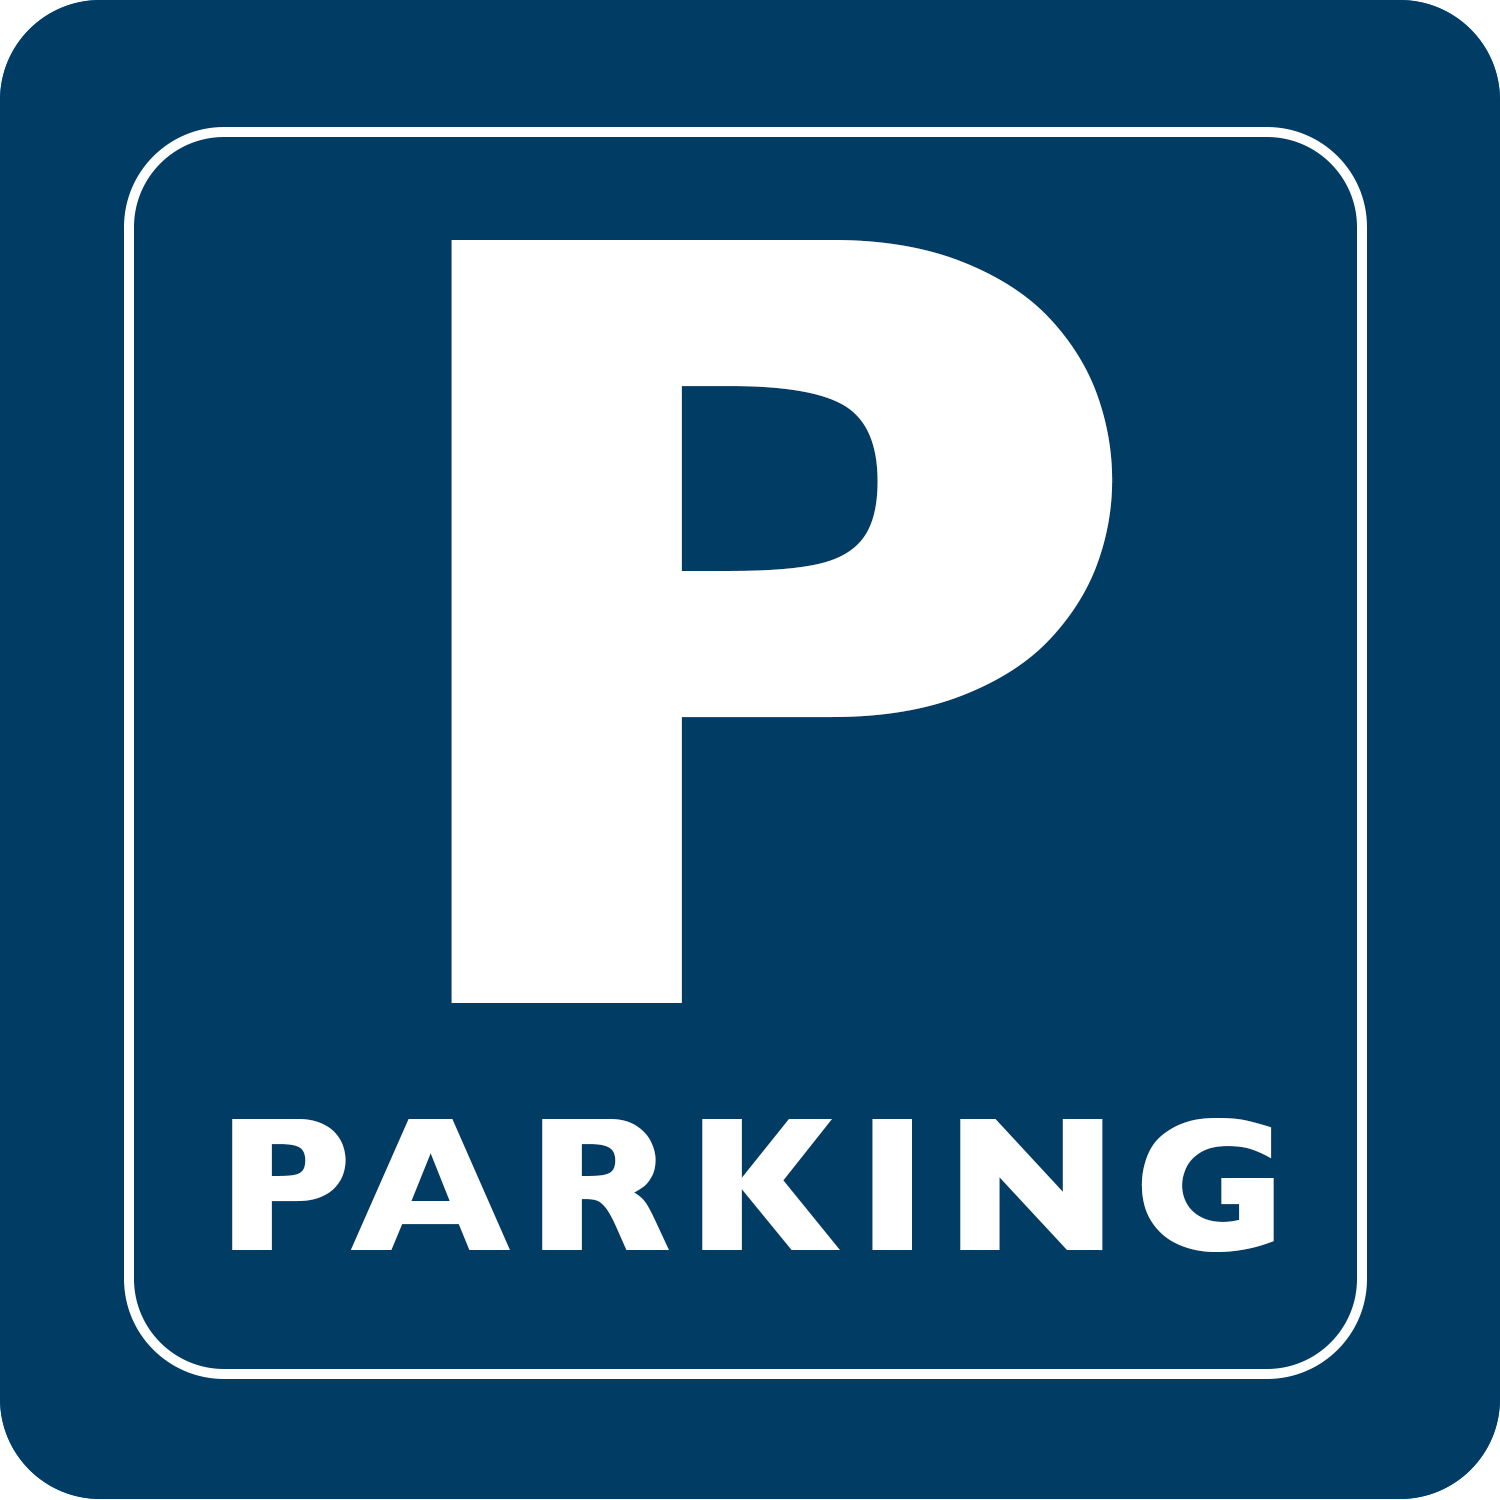 Reserve your parking in advance